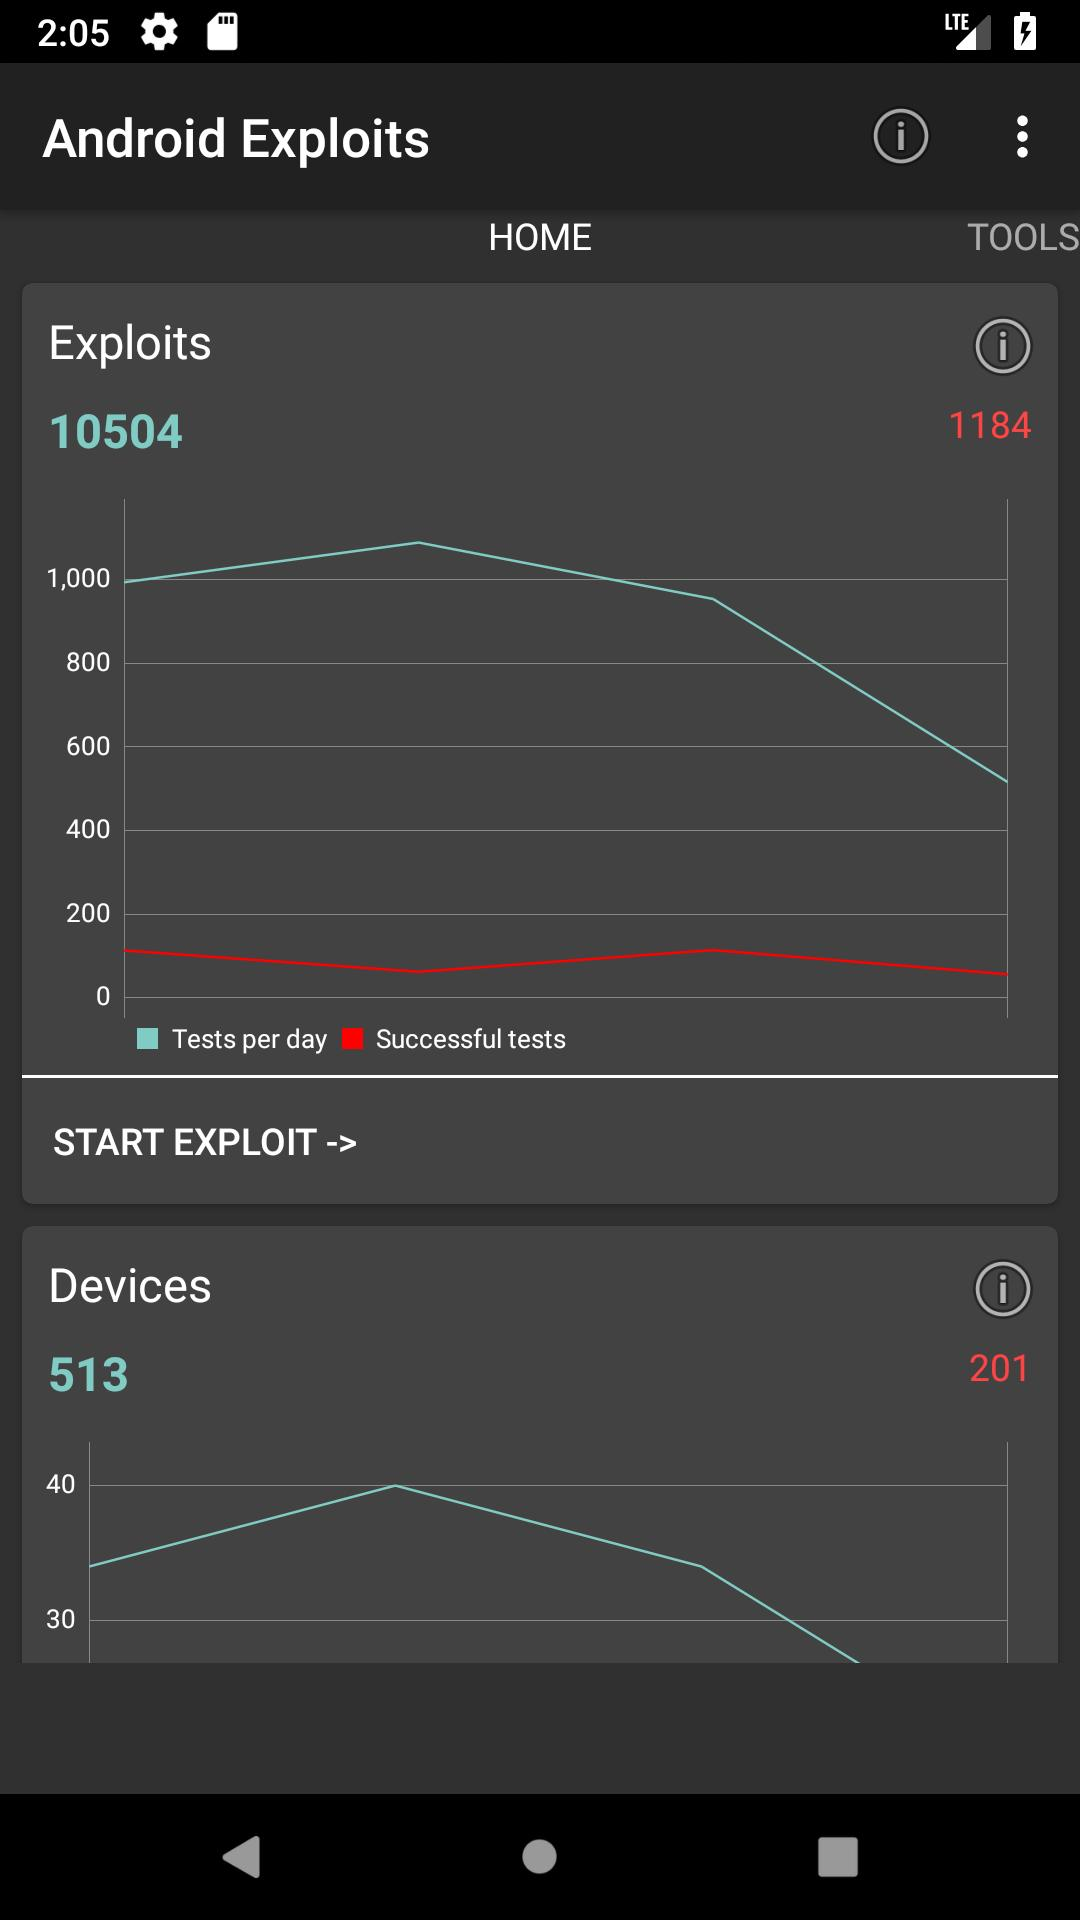 Android Exploits for Android - APK Download